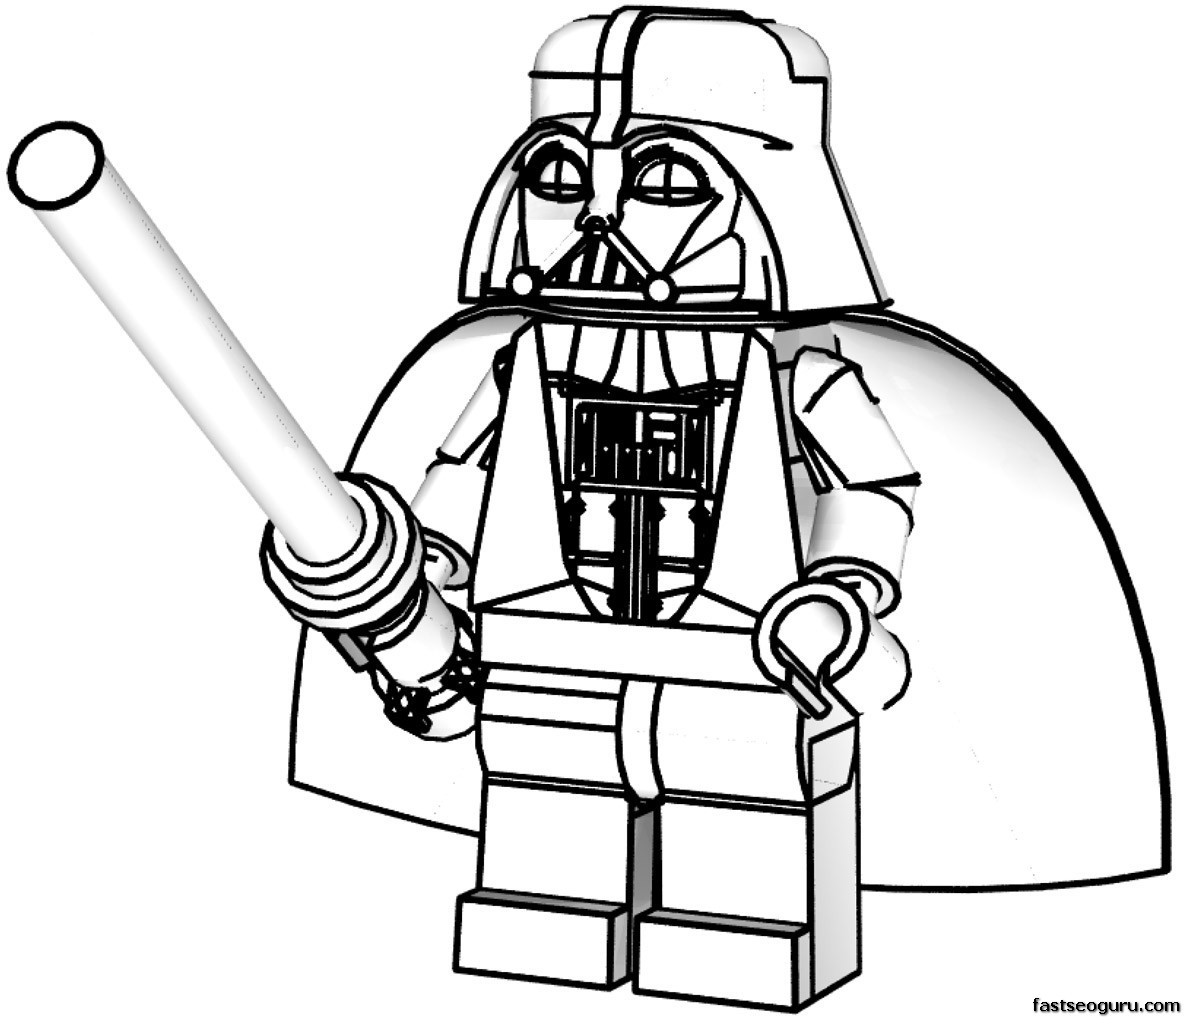 lego star wars pictures to color lego stormtrooper coloring pages at getcoloringscom wars lego color pictures star to